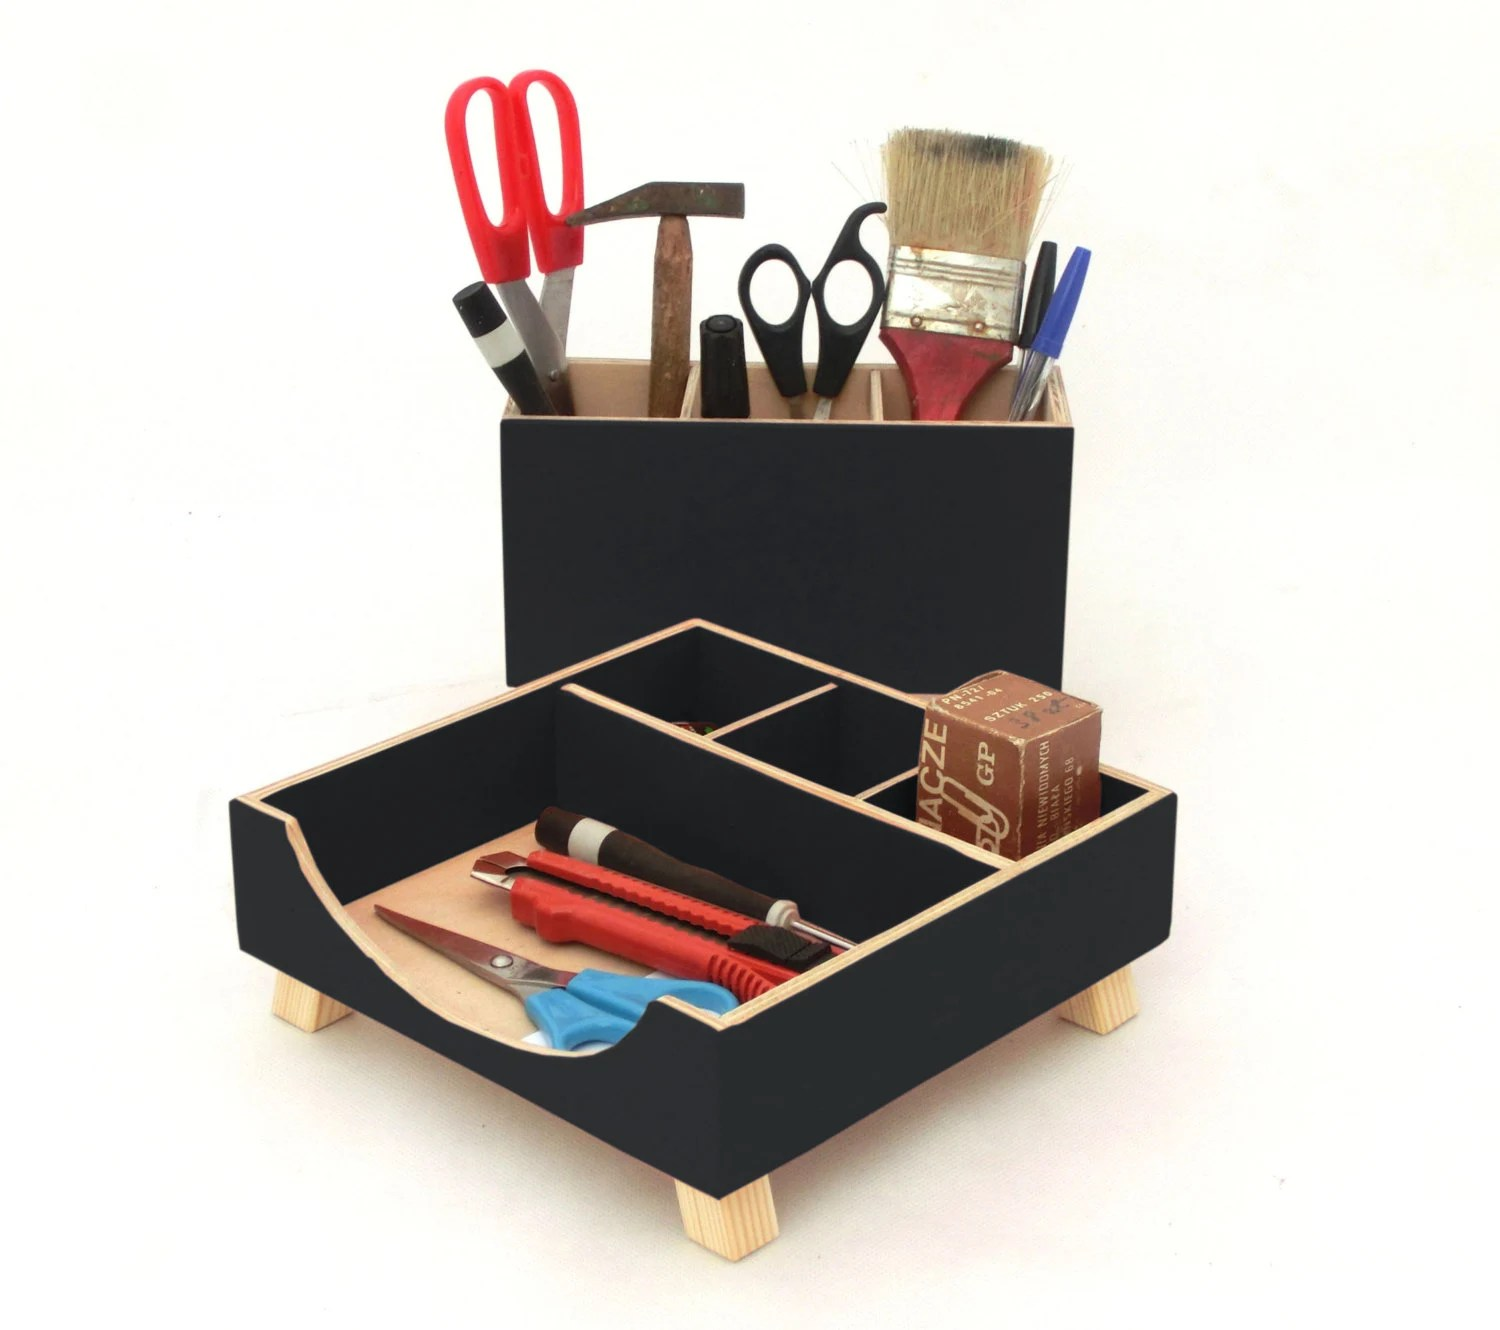 Wood Desk Organizer Set Desk Organizer Black Desk Accessories Wood Desktop